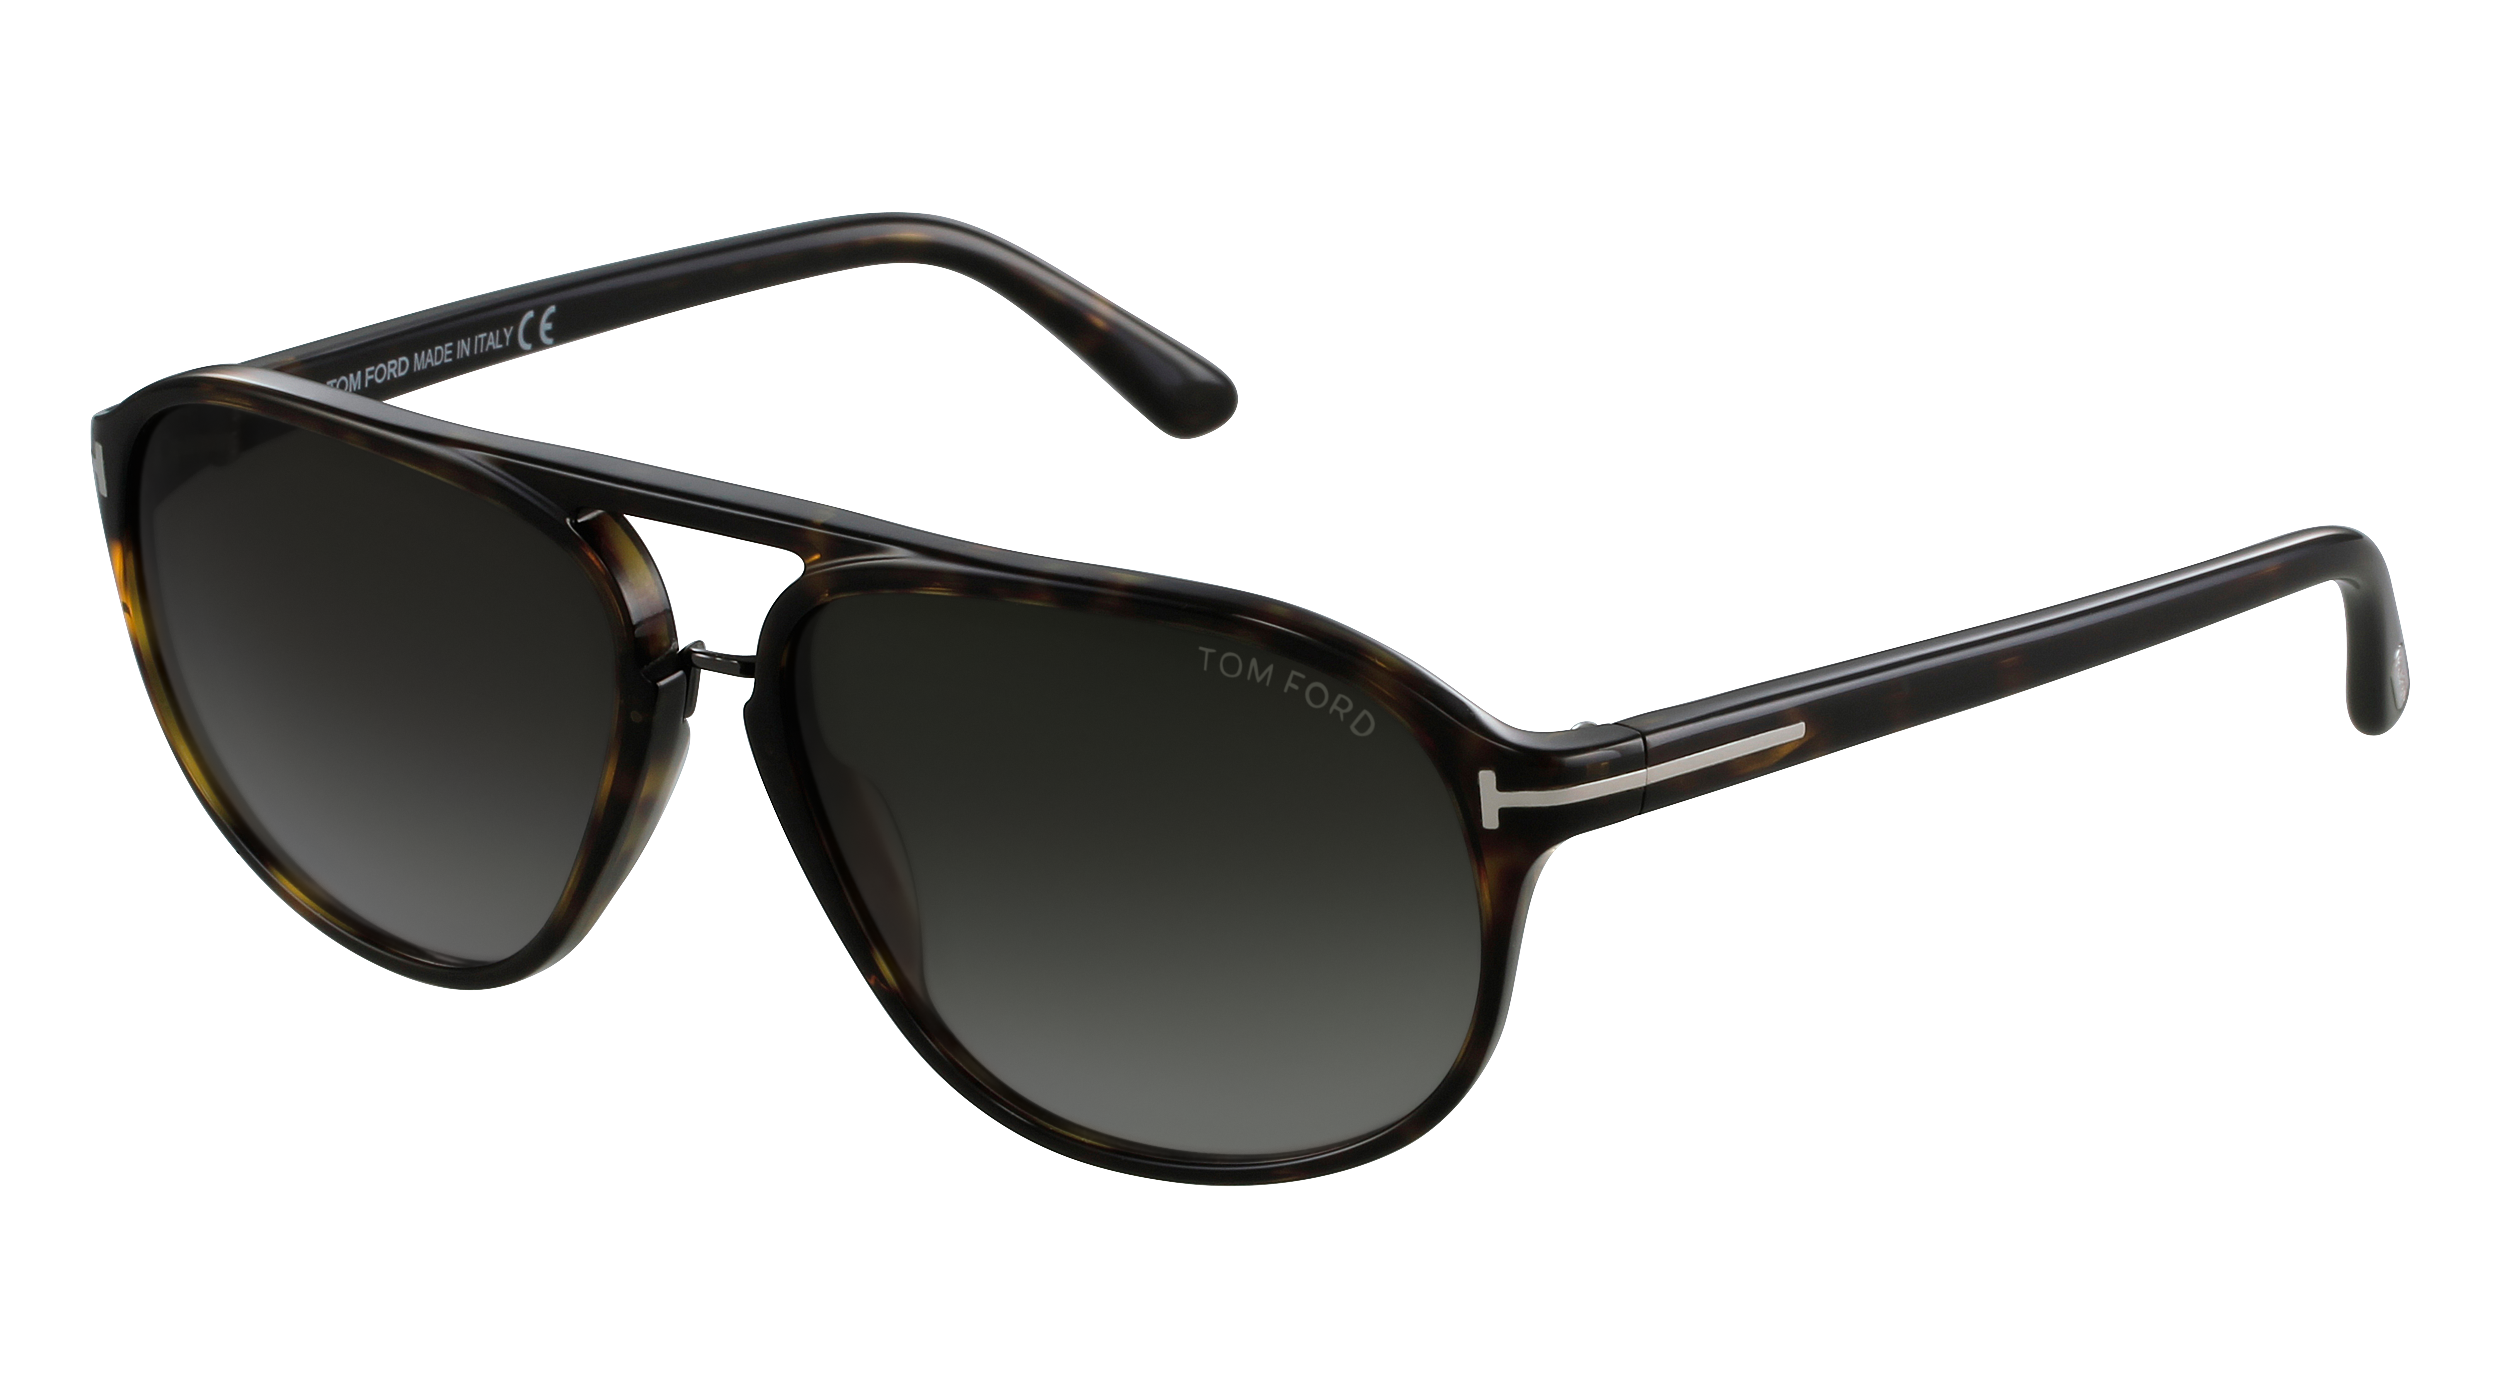 Tom Ford FT0447-S-52B-60-15-140